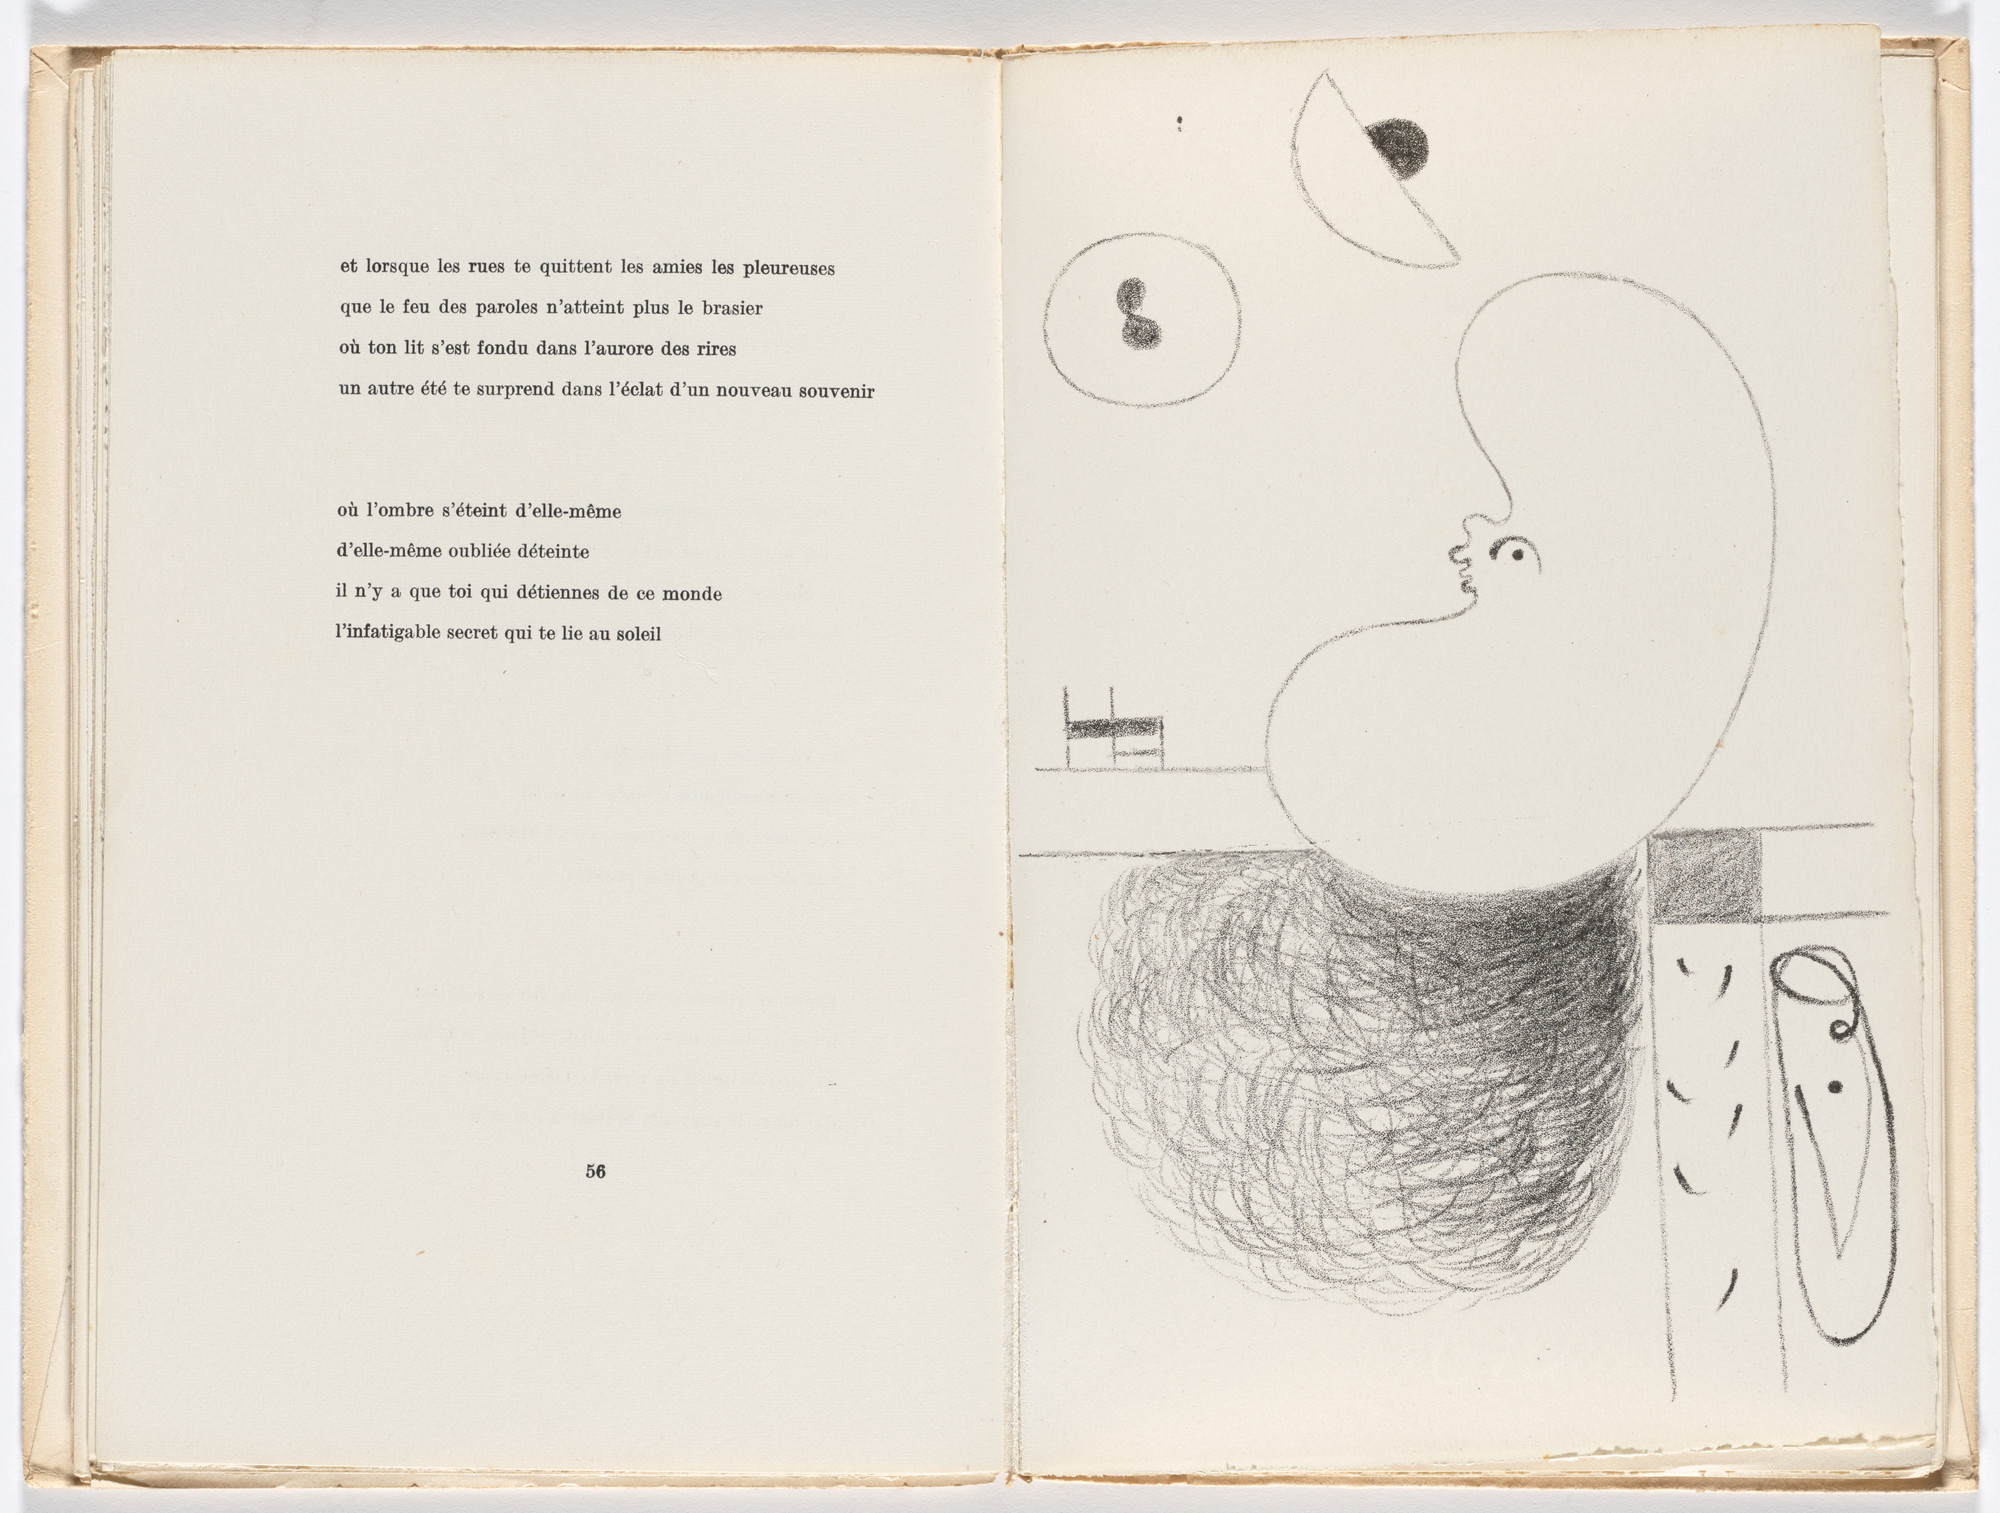 Joan Miró. Plate (facing page 56) from L'Arbre des voyageurs (The Tree of Travelers). 1929, published 1930